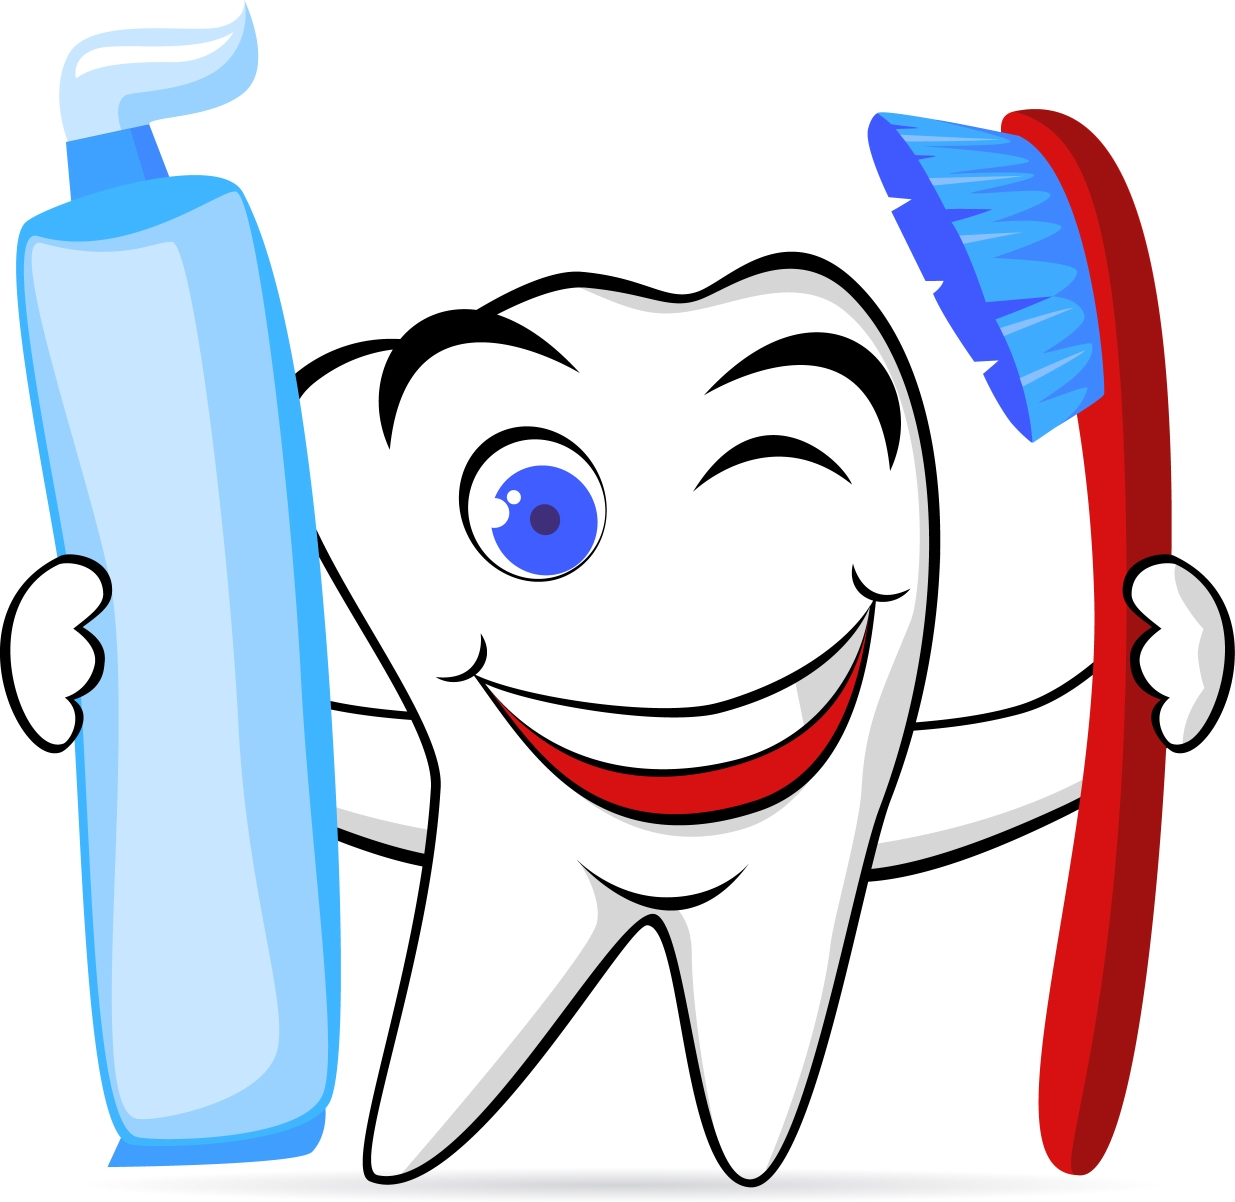 Free Cartoon Toothbrush Cliparts, Download Free Clip Art, Free Clip.